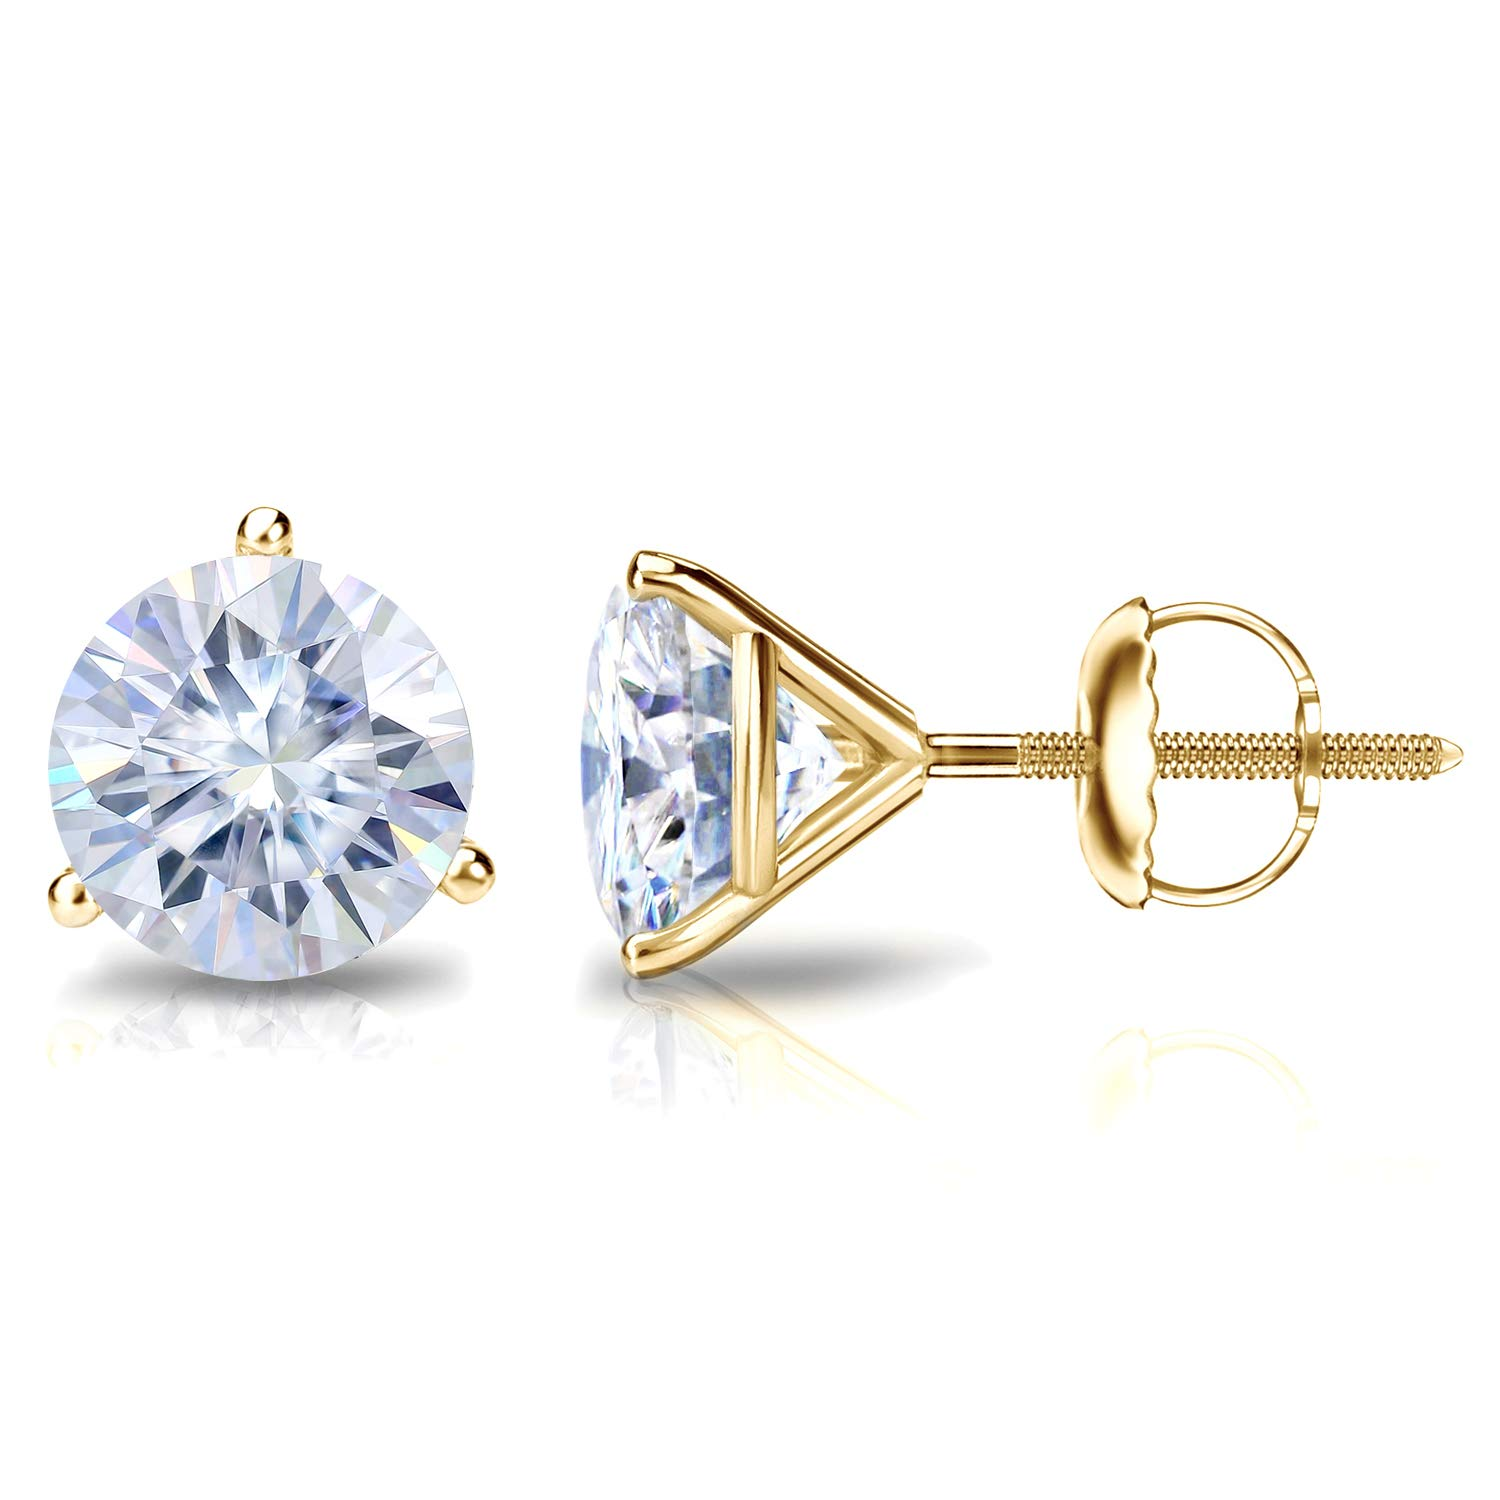 18k Gold Round Moissanite Stud Earrings (1 to 7ct TGW, G-H) 3-Prong Martini Set, Screw-Back by Diamond Wish